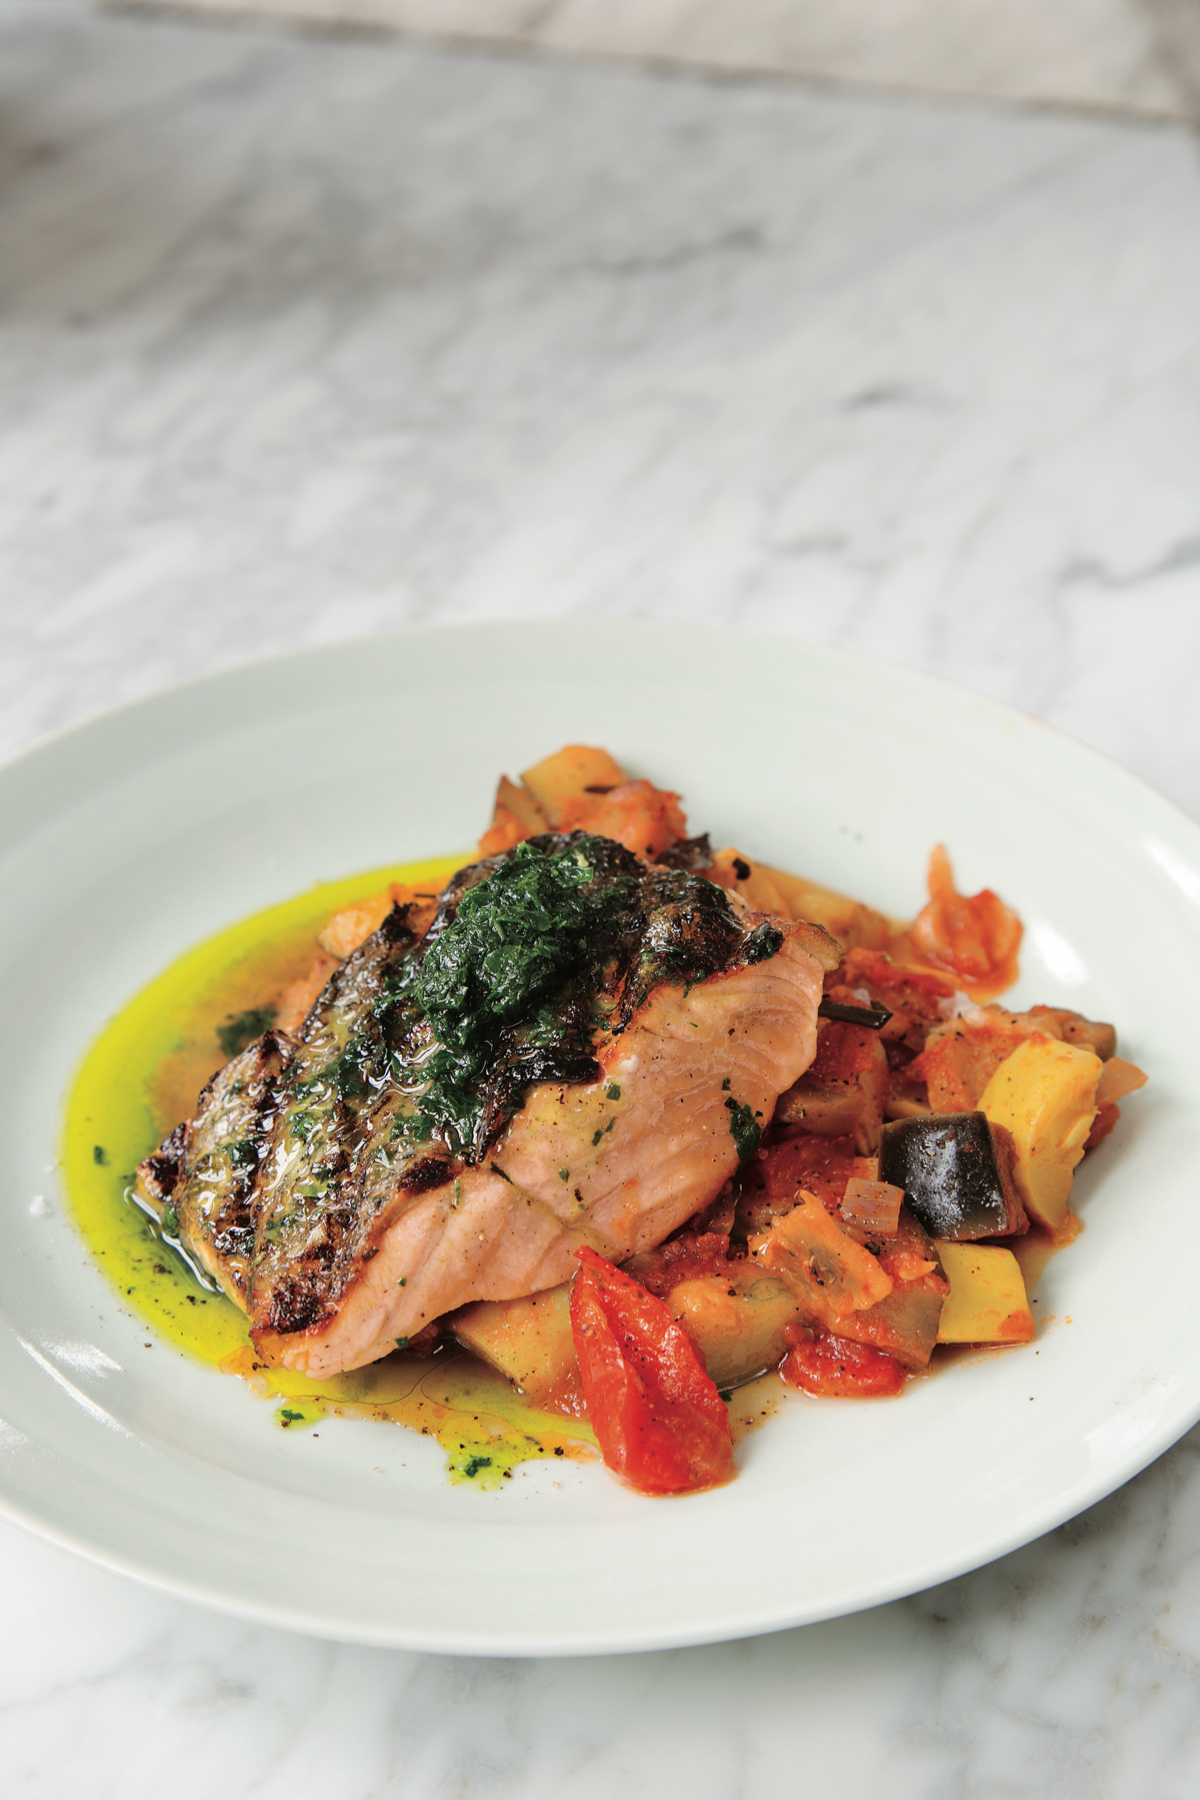 Grilled Salmon with Parsley Pistou